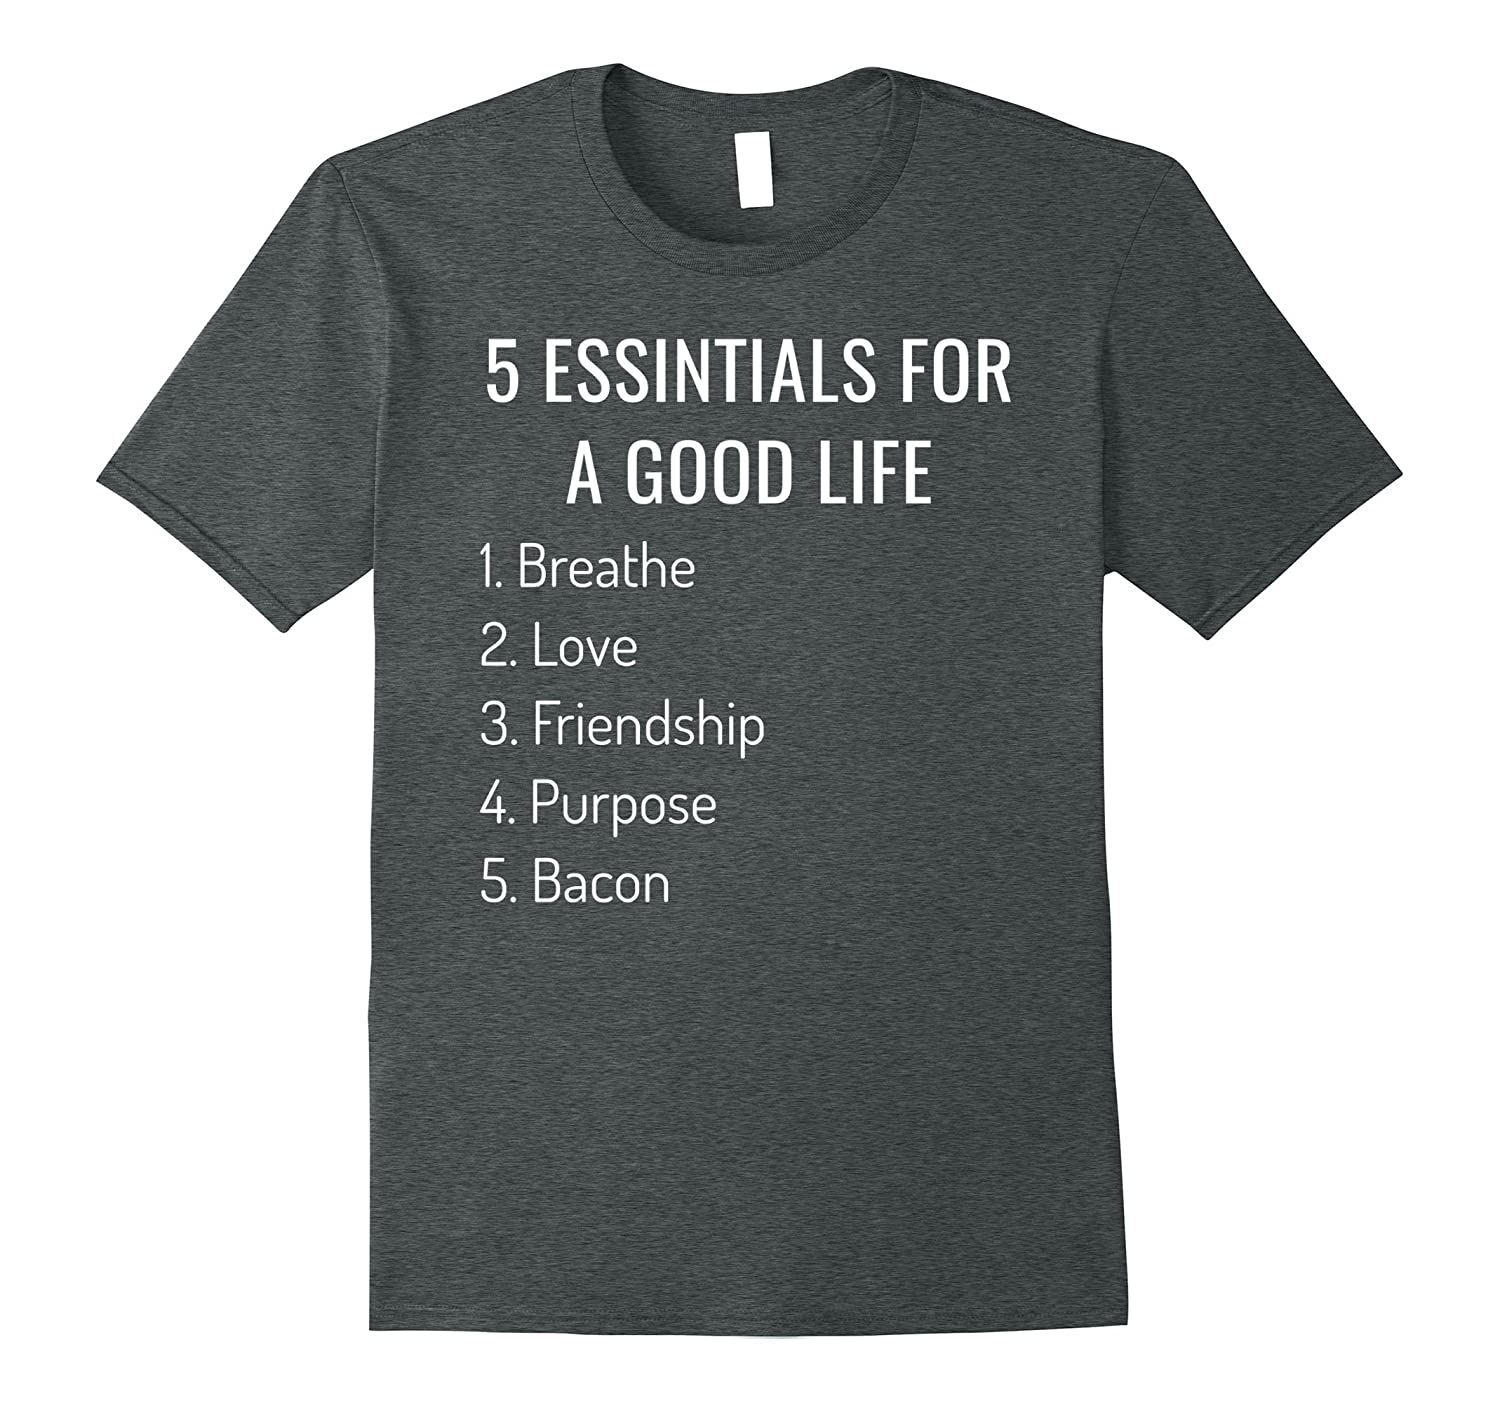 5 Essentials for a good life t-shirt